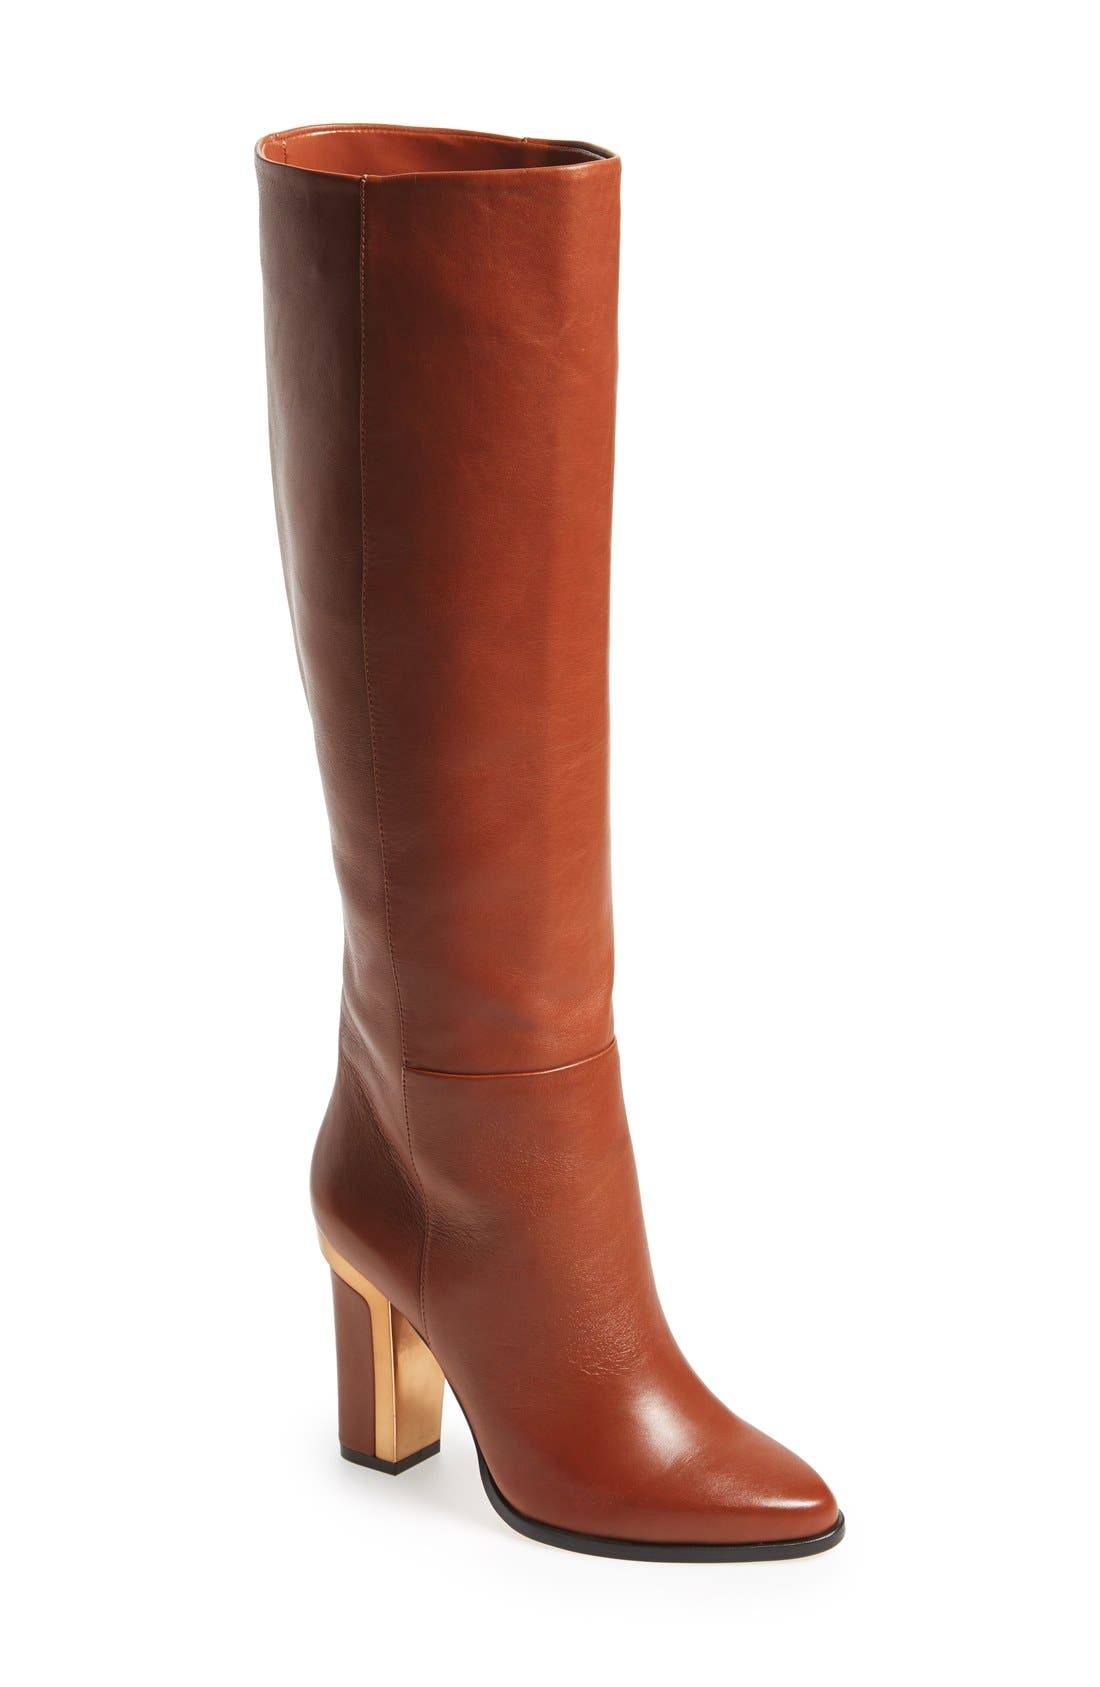 Alternate Image 1 Selected - BCBGMAXAZRIA 'Oak' Tall Boot (Women)